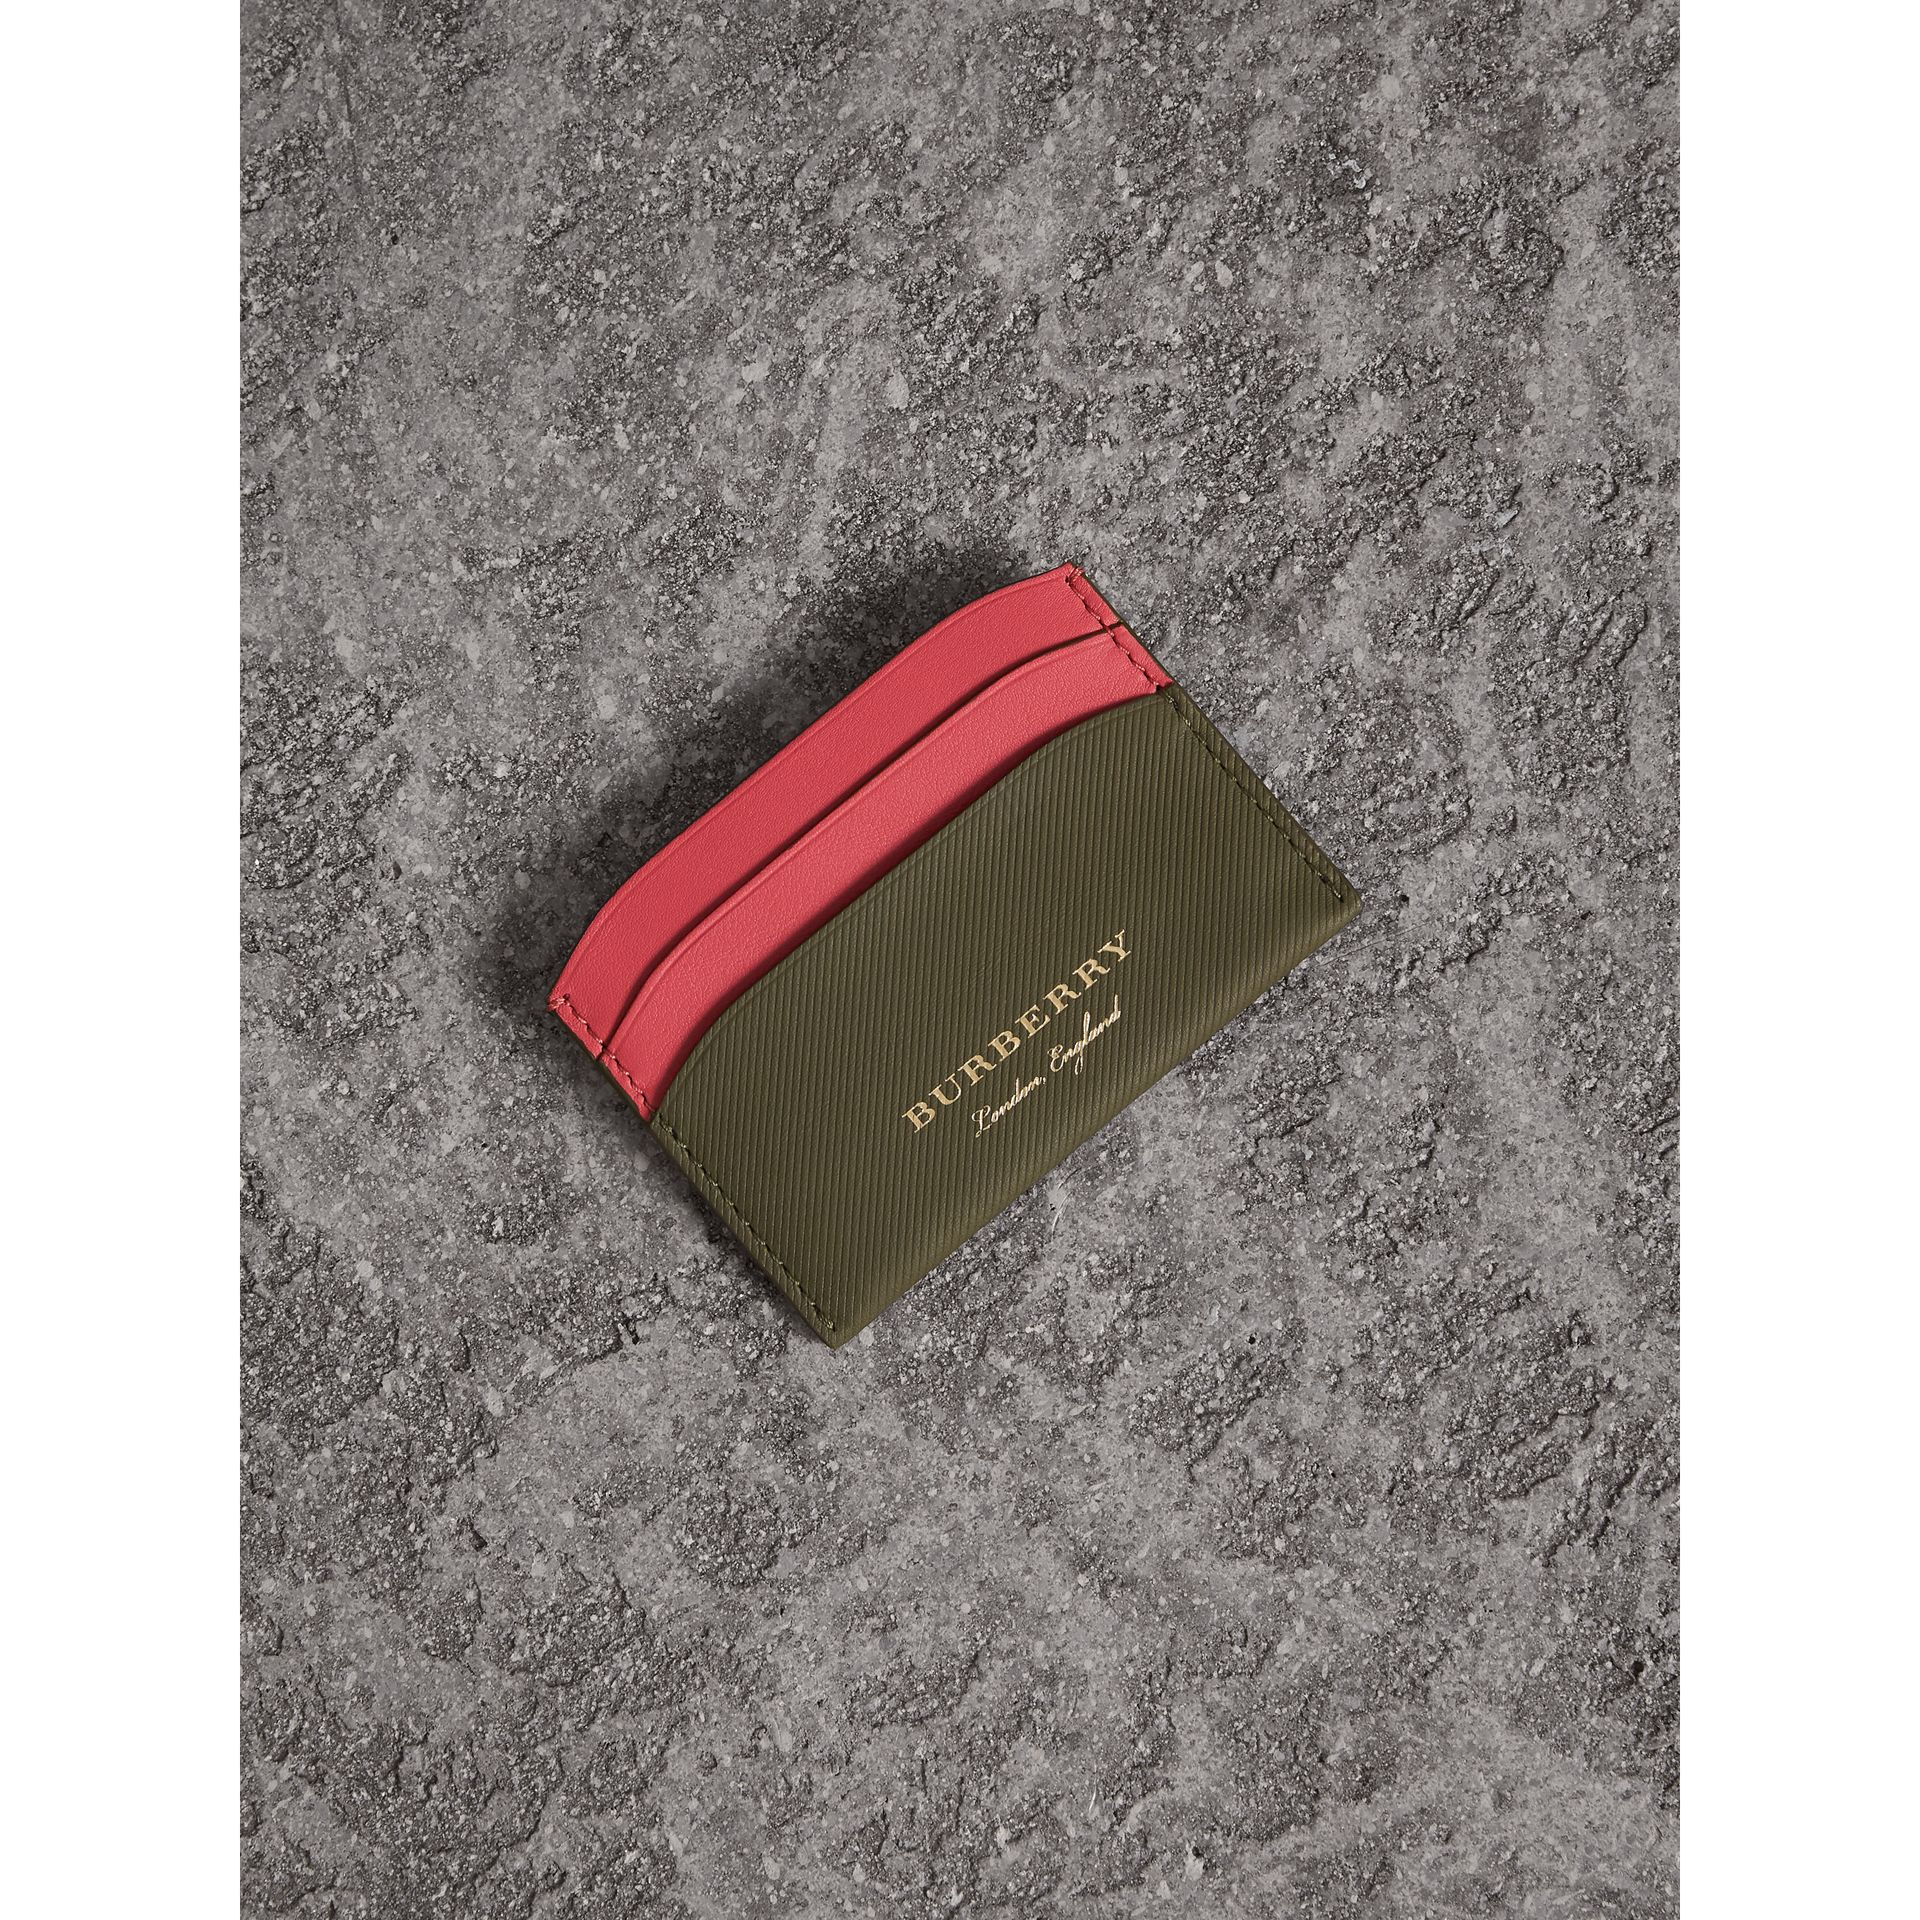 Two-tone Trench Leather Card Case in Mss Green/ Blsm Pink - Women | Burberry - gallery image 0